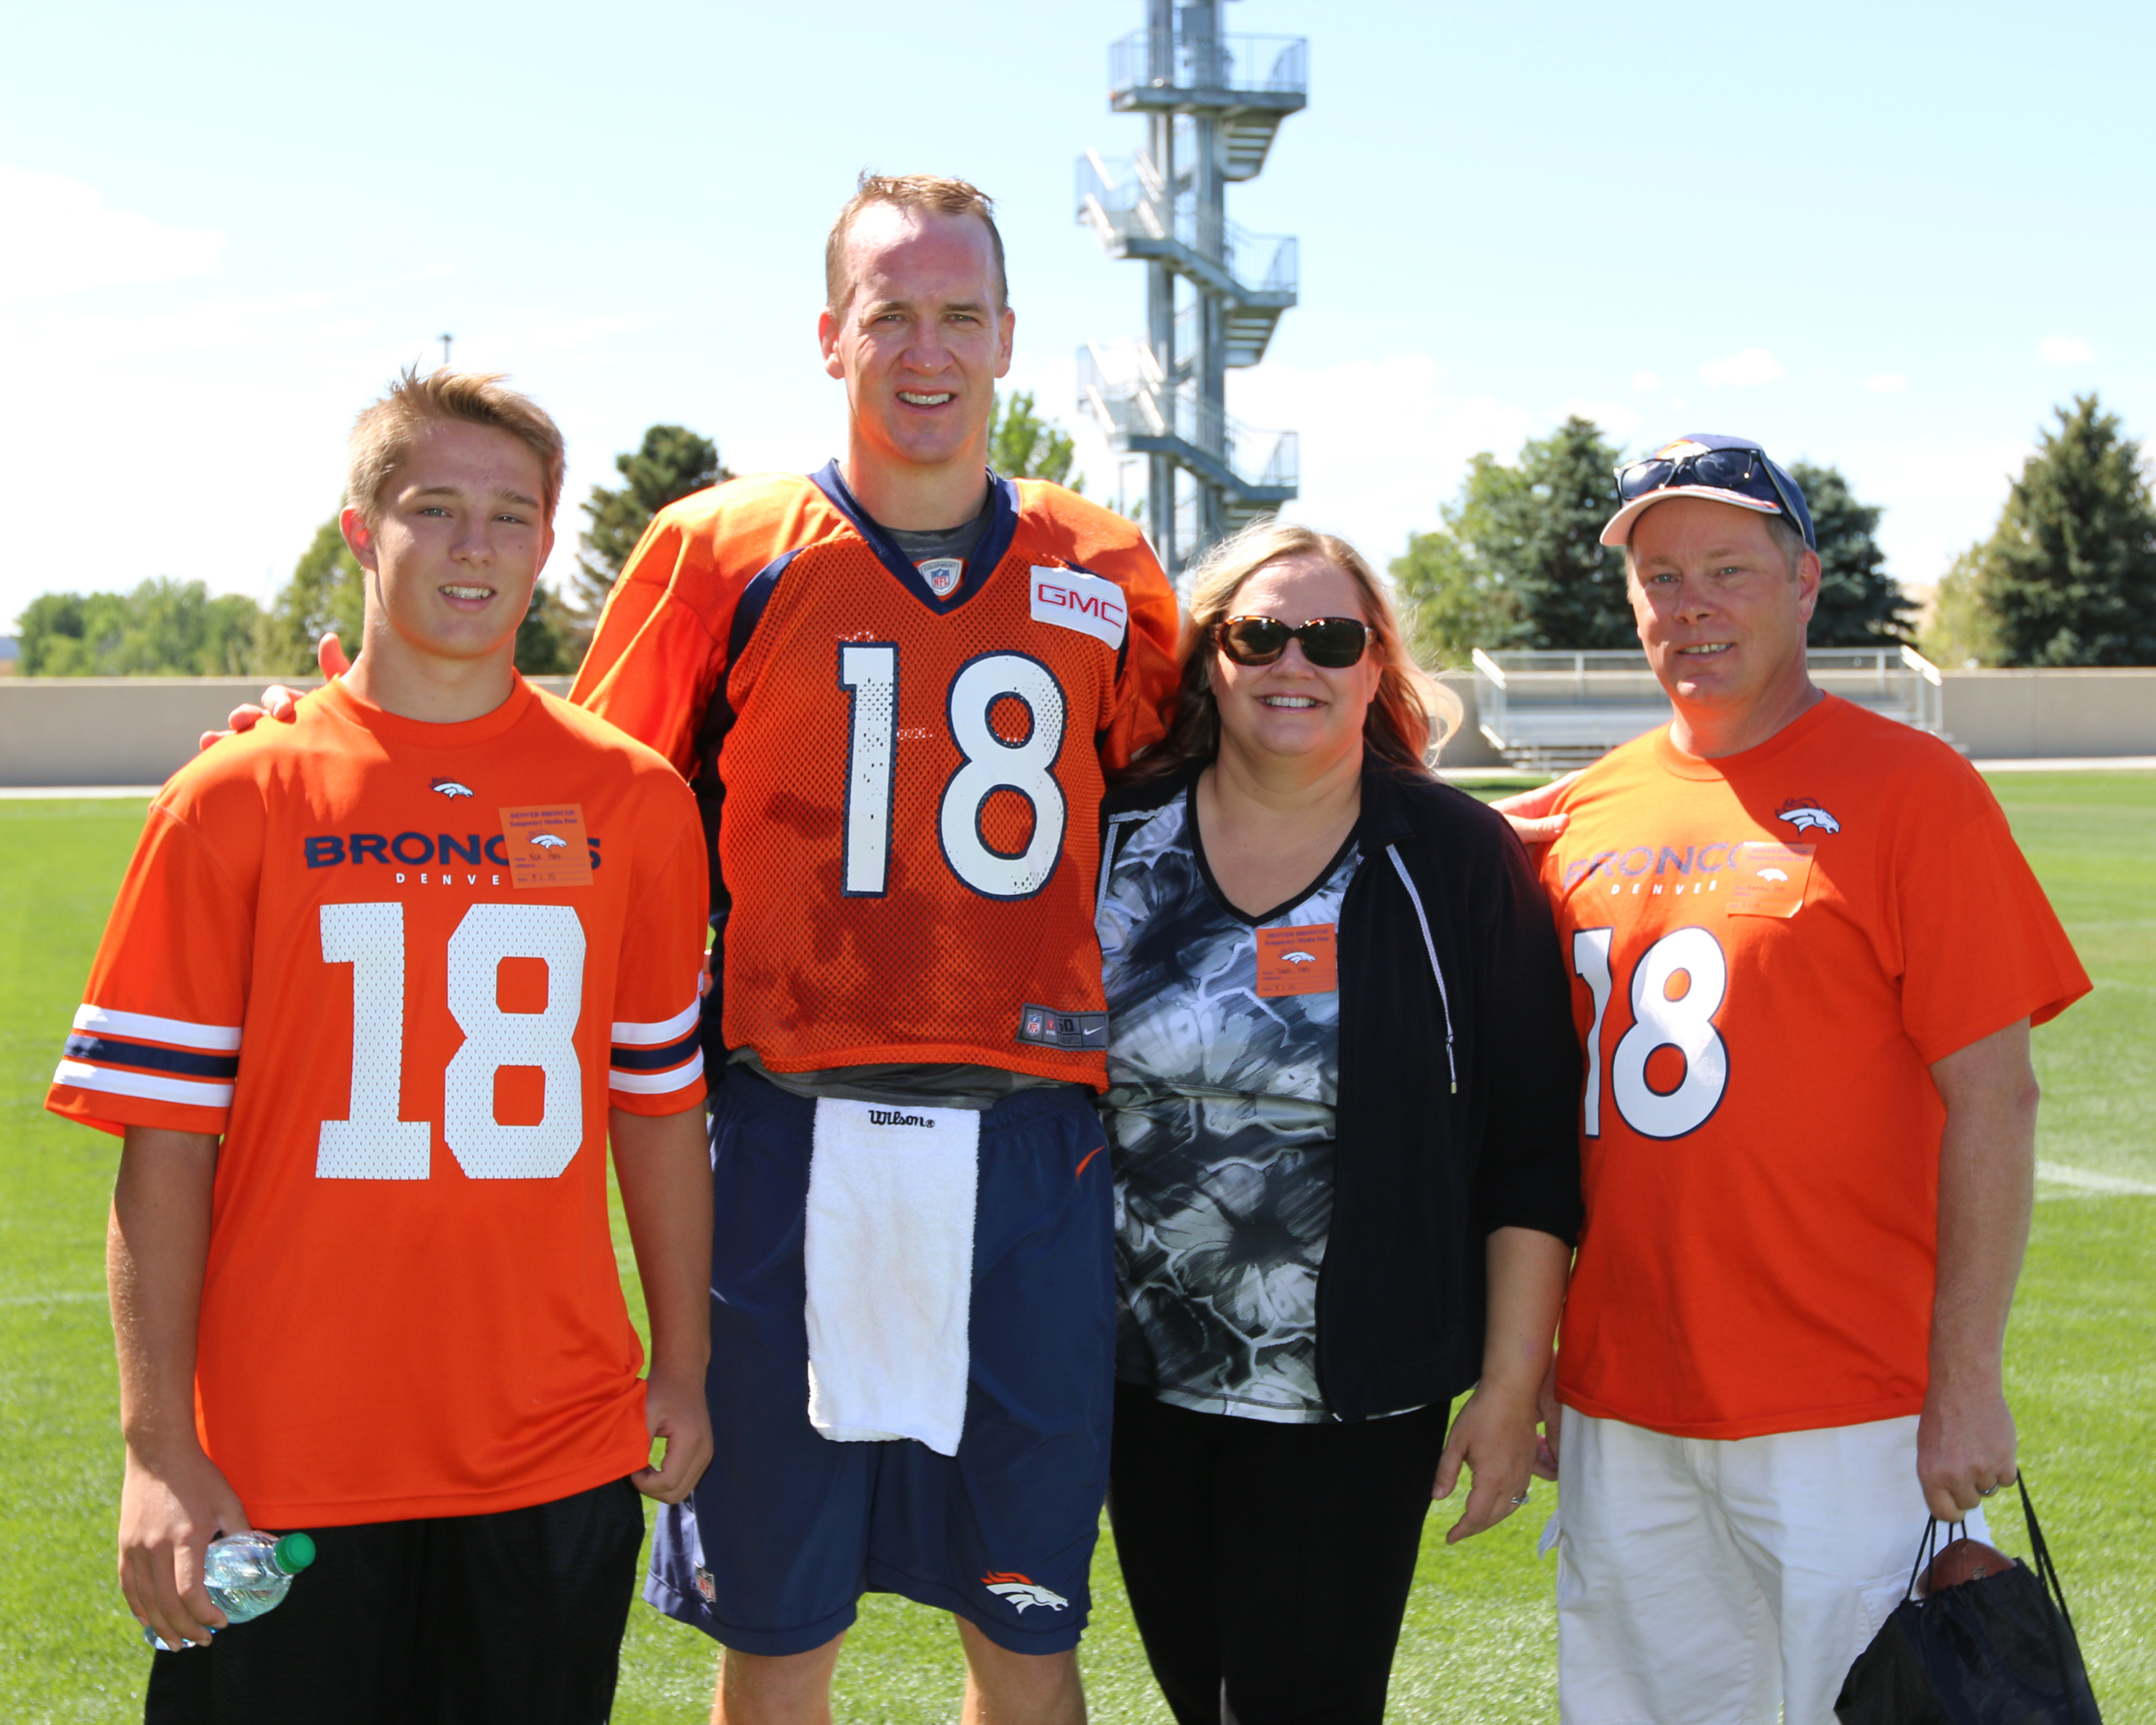 Sheri Kaye Hoff , Peyton Manning , and family at #broncos practice Sept 1, 2015. 7 weeks after her near death experience #healing #miracles #nde https://wp.me/p71qJb-cJ